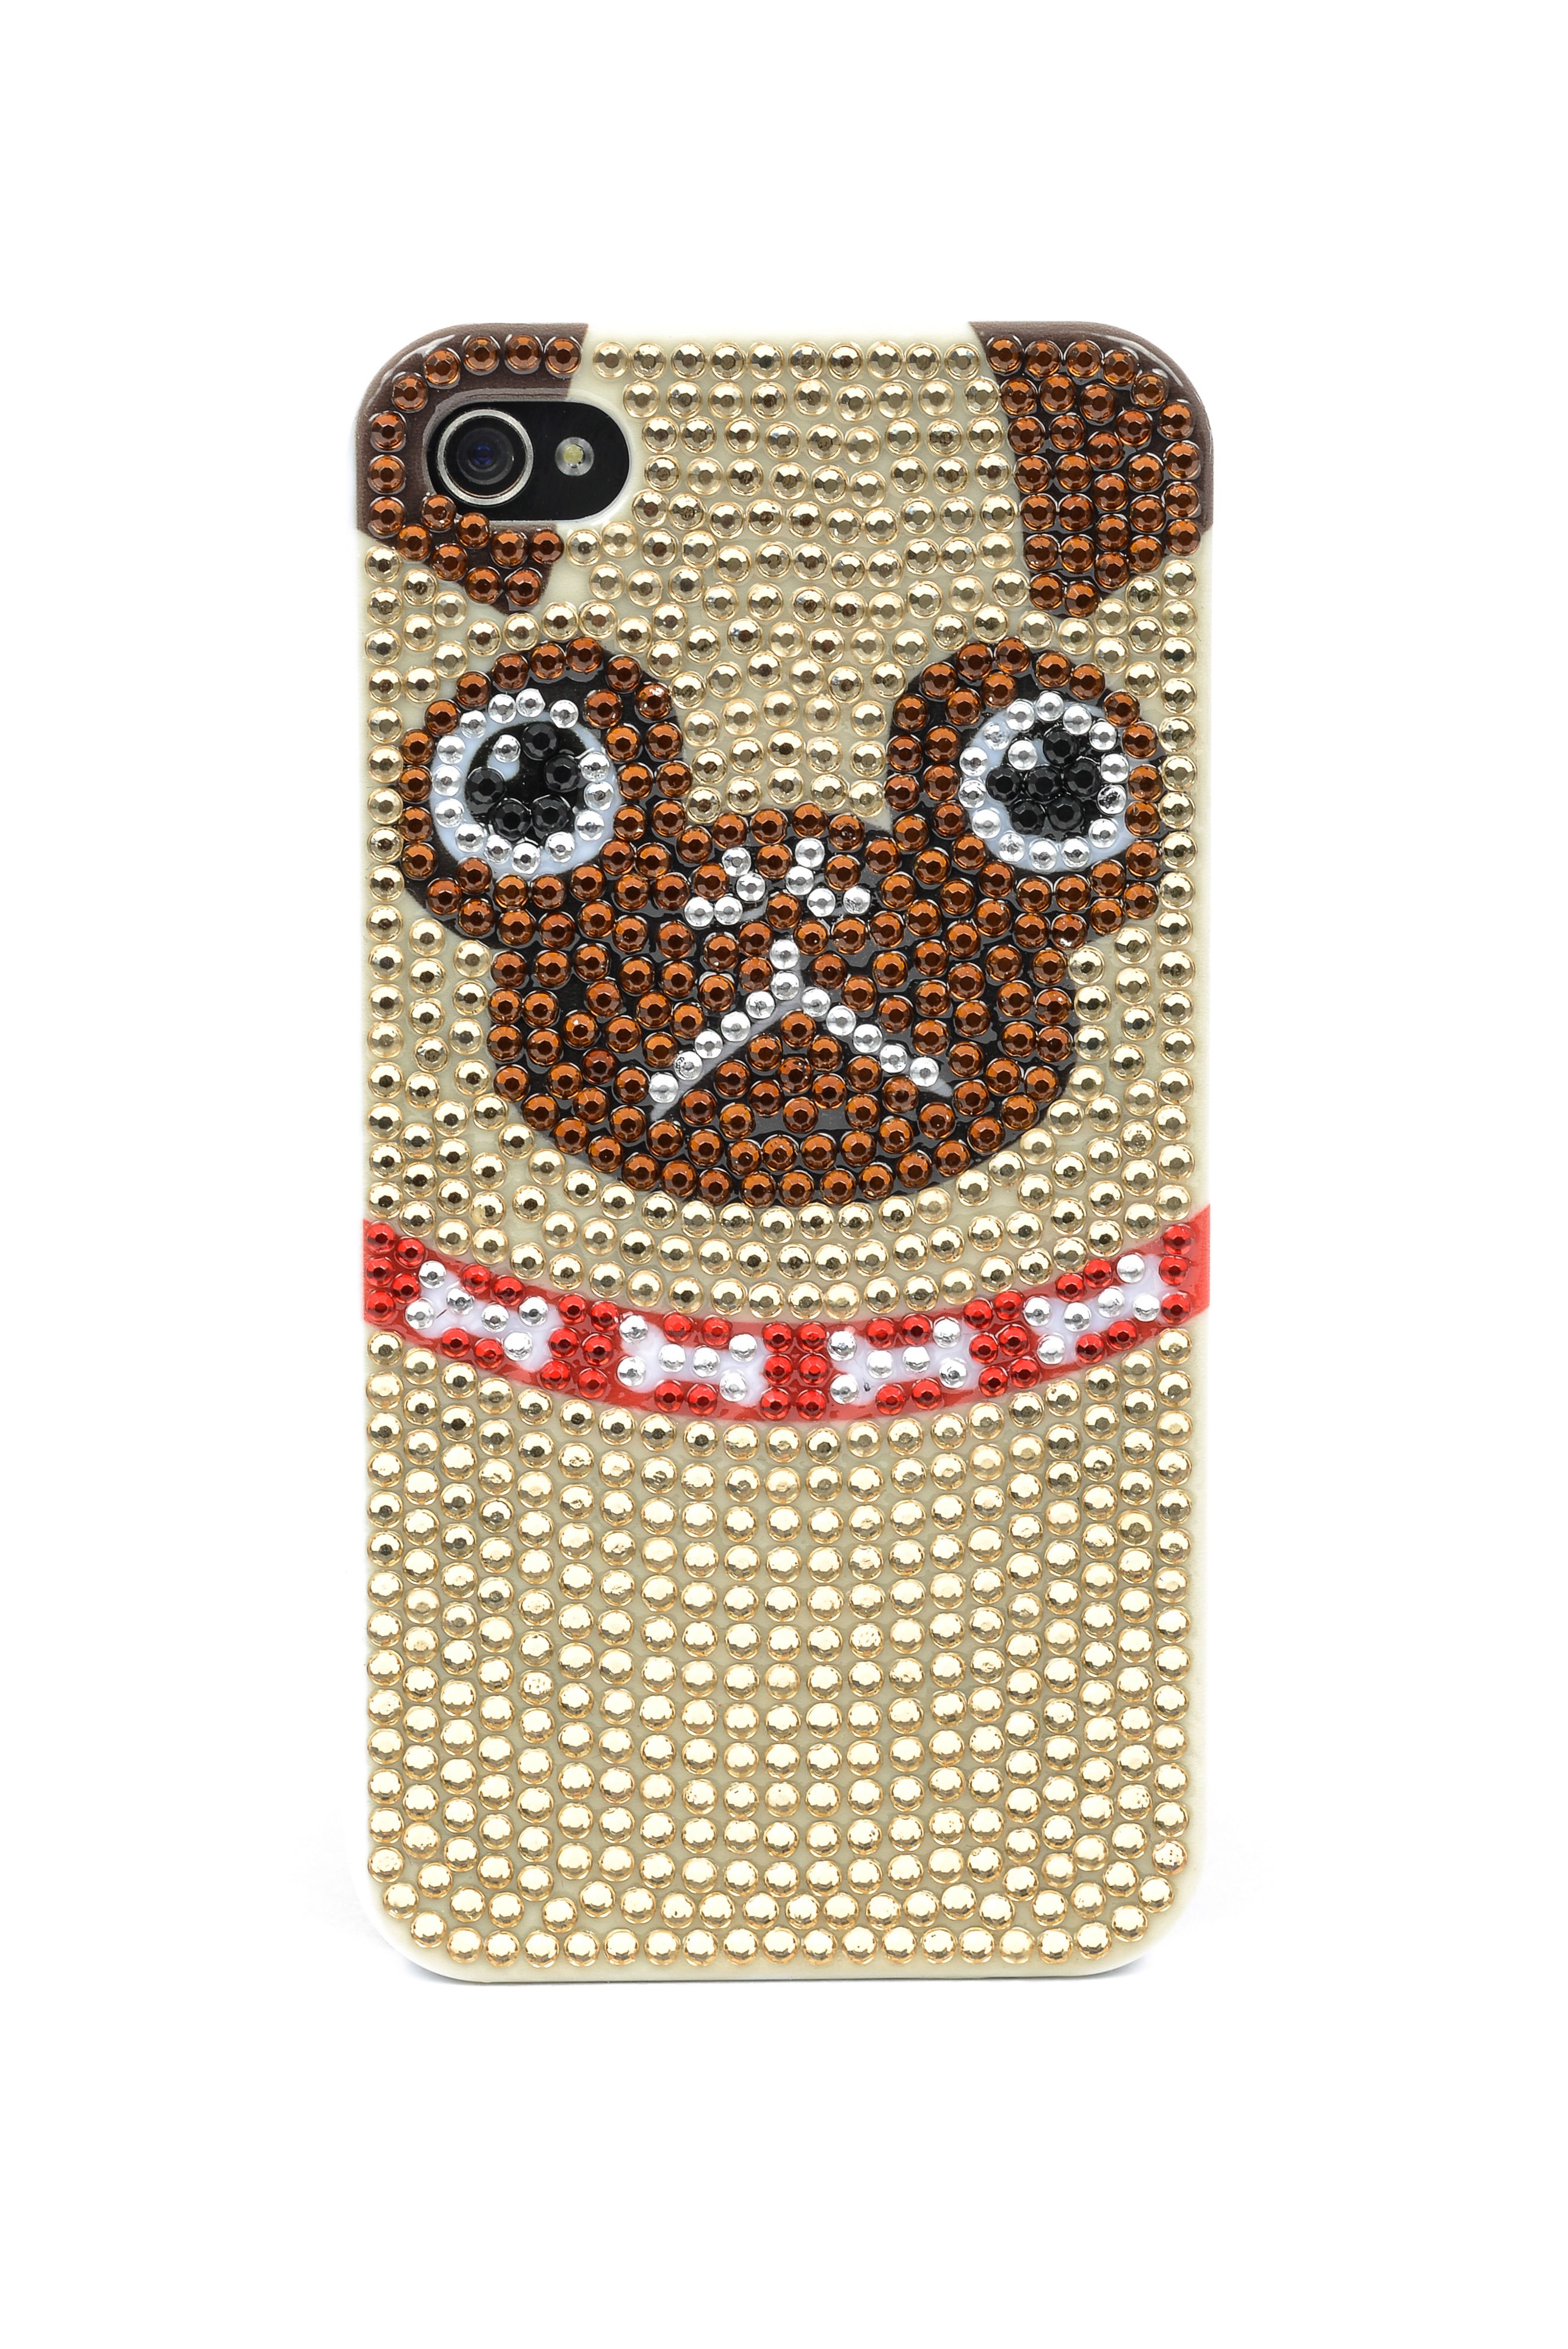 Pug iphone case 4/4S